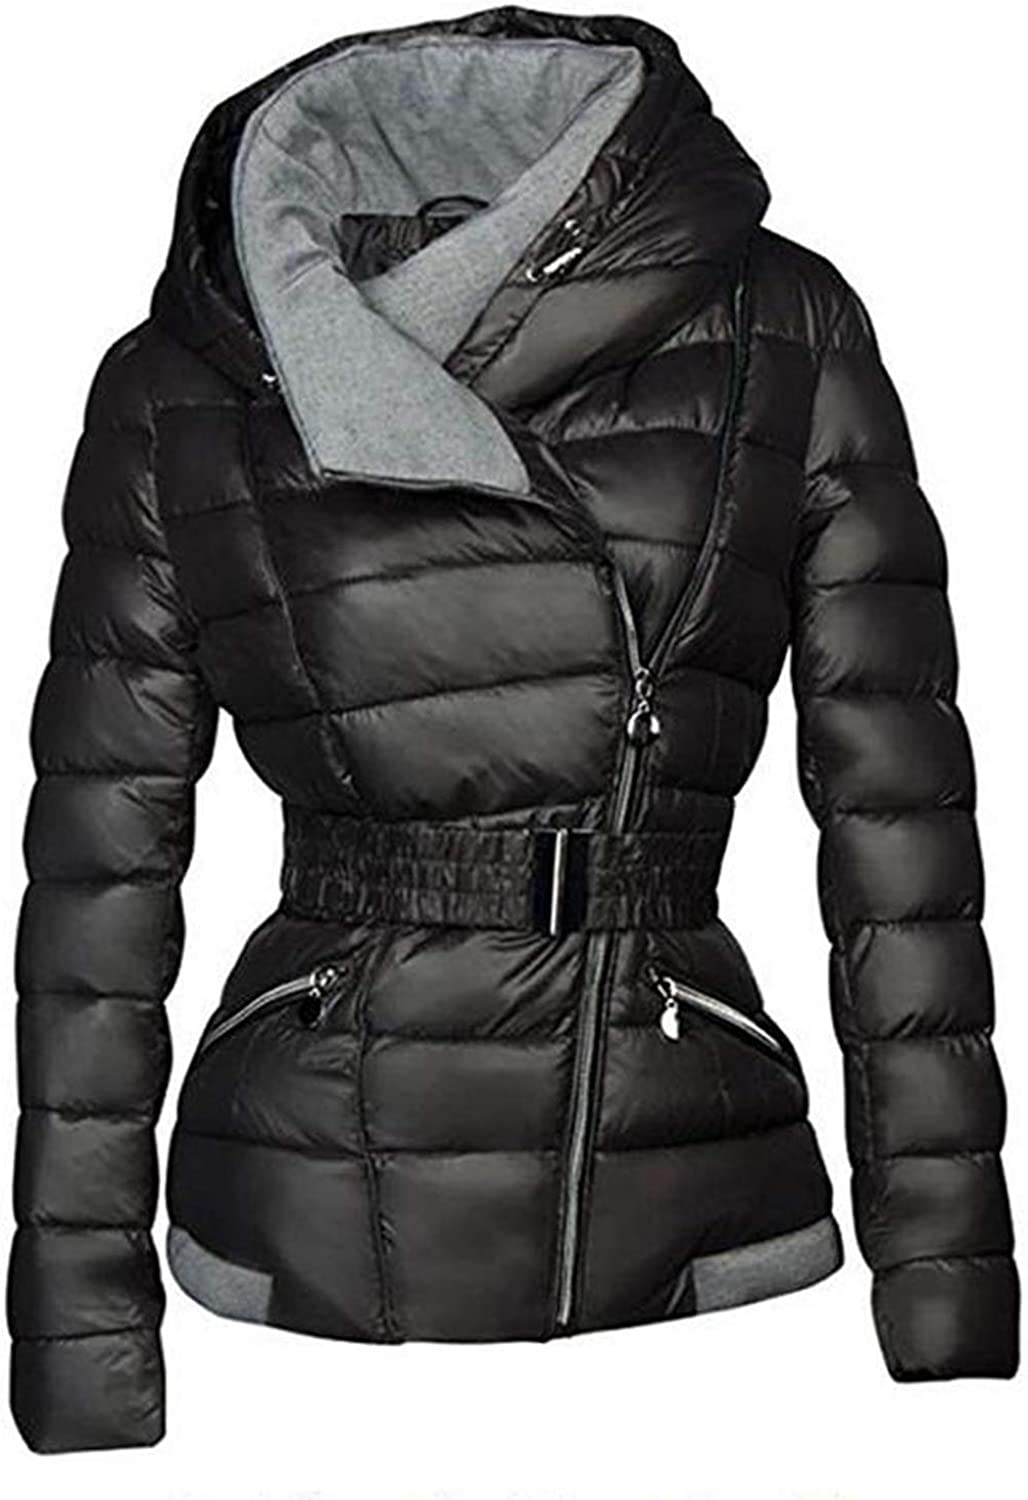 I'm good at you 2018 Winter Coats Women Parkas Cotton Warm Thick Coat with Belt Slim Casual Zipper Black Outerwear